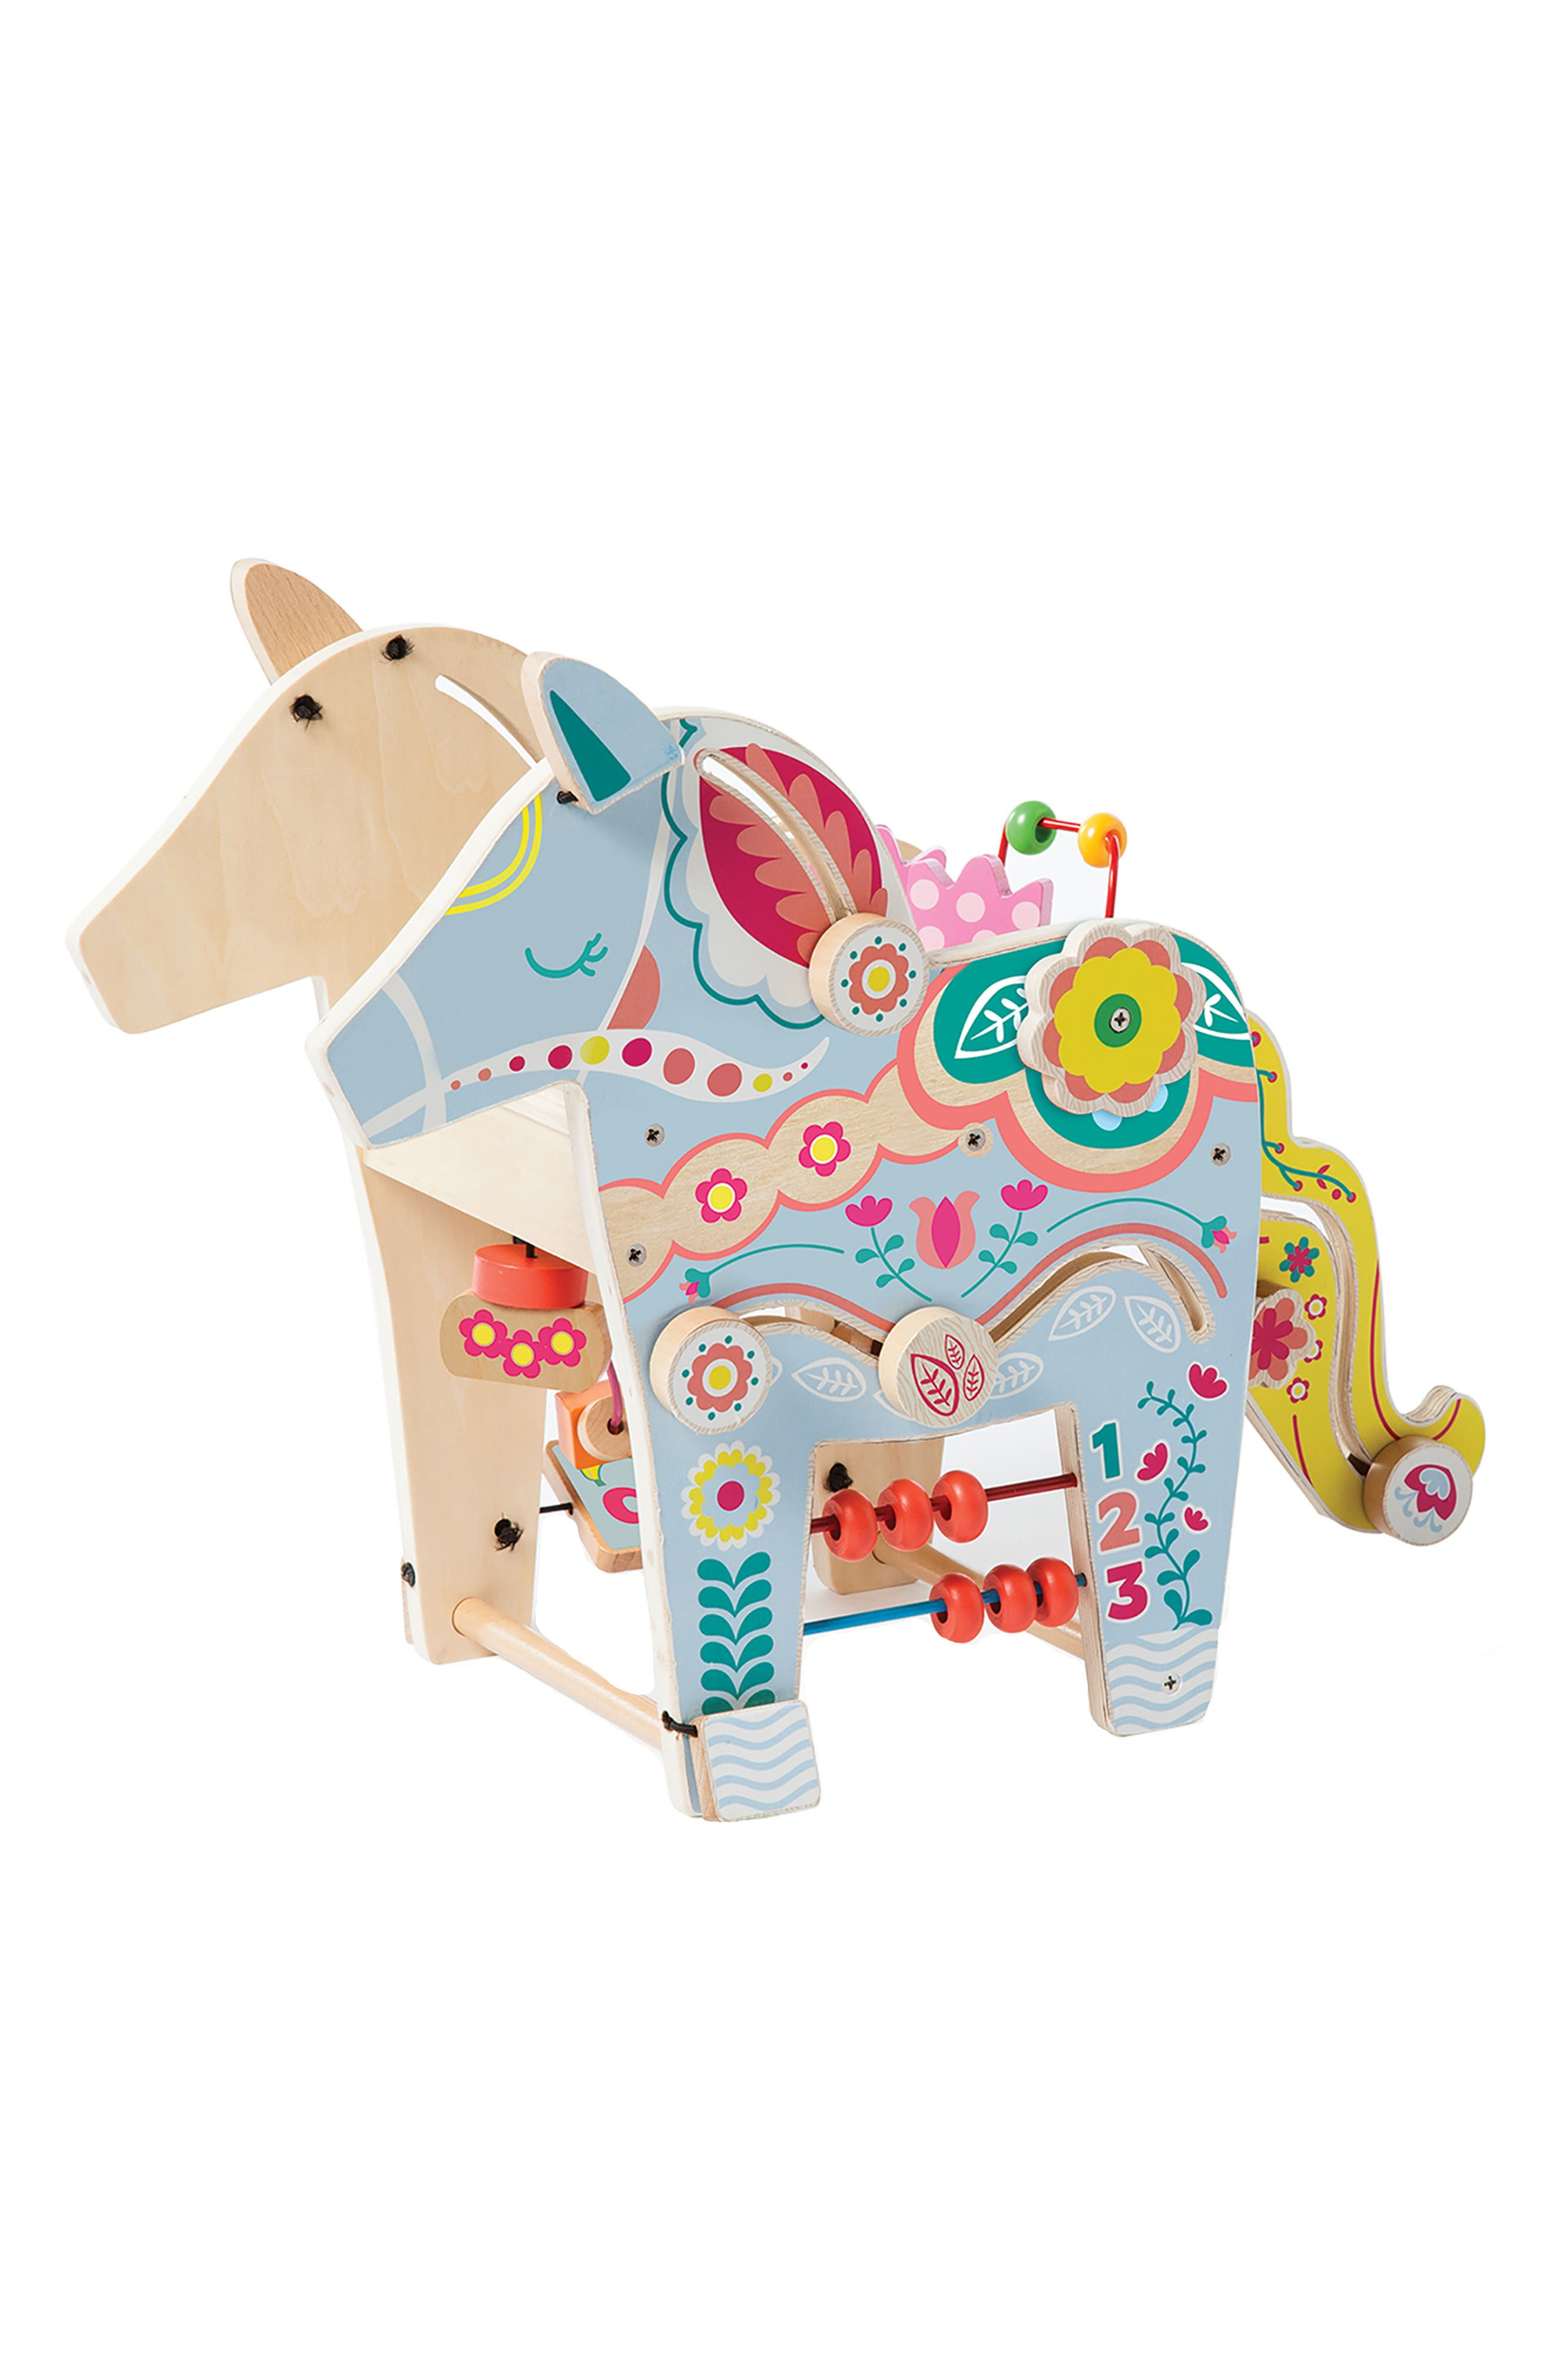 Wooden Playful Pony Activity Center,                         Main,                         color, Blue